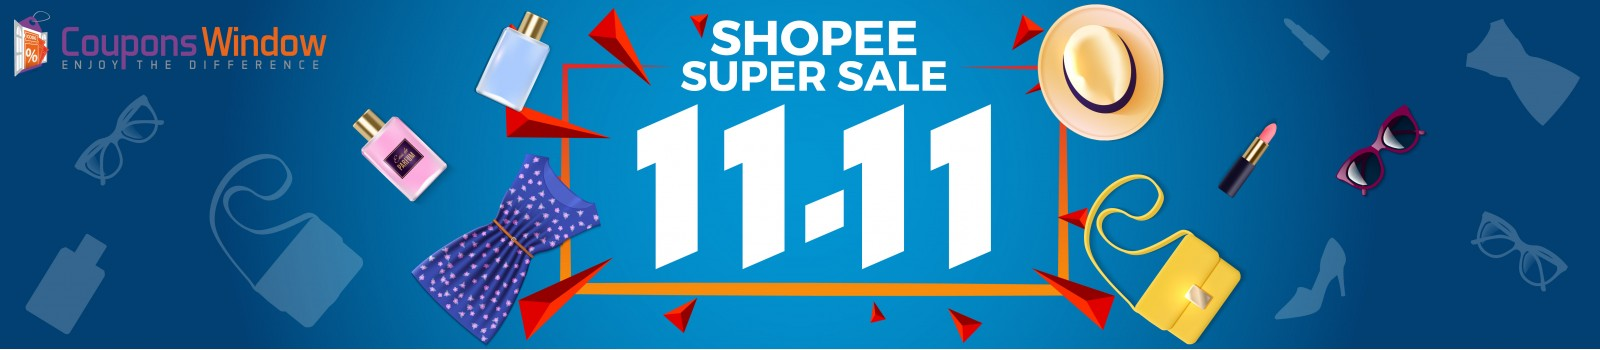 couponswindow-coupon-11-11-sales